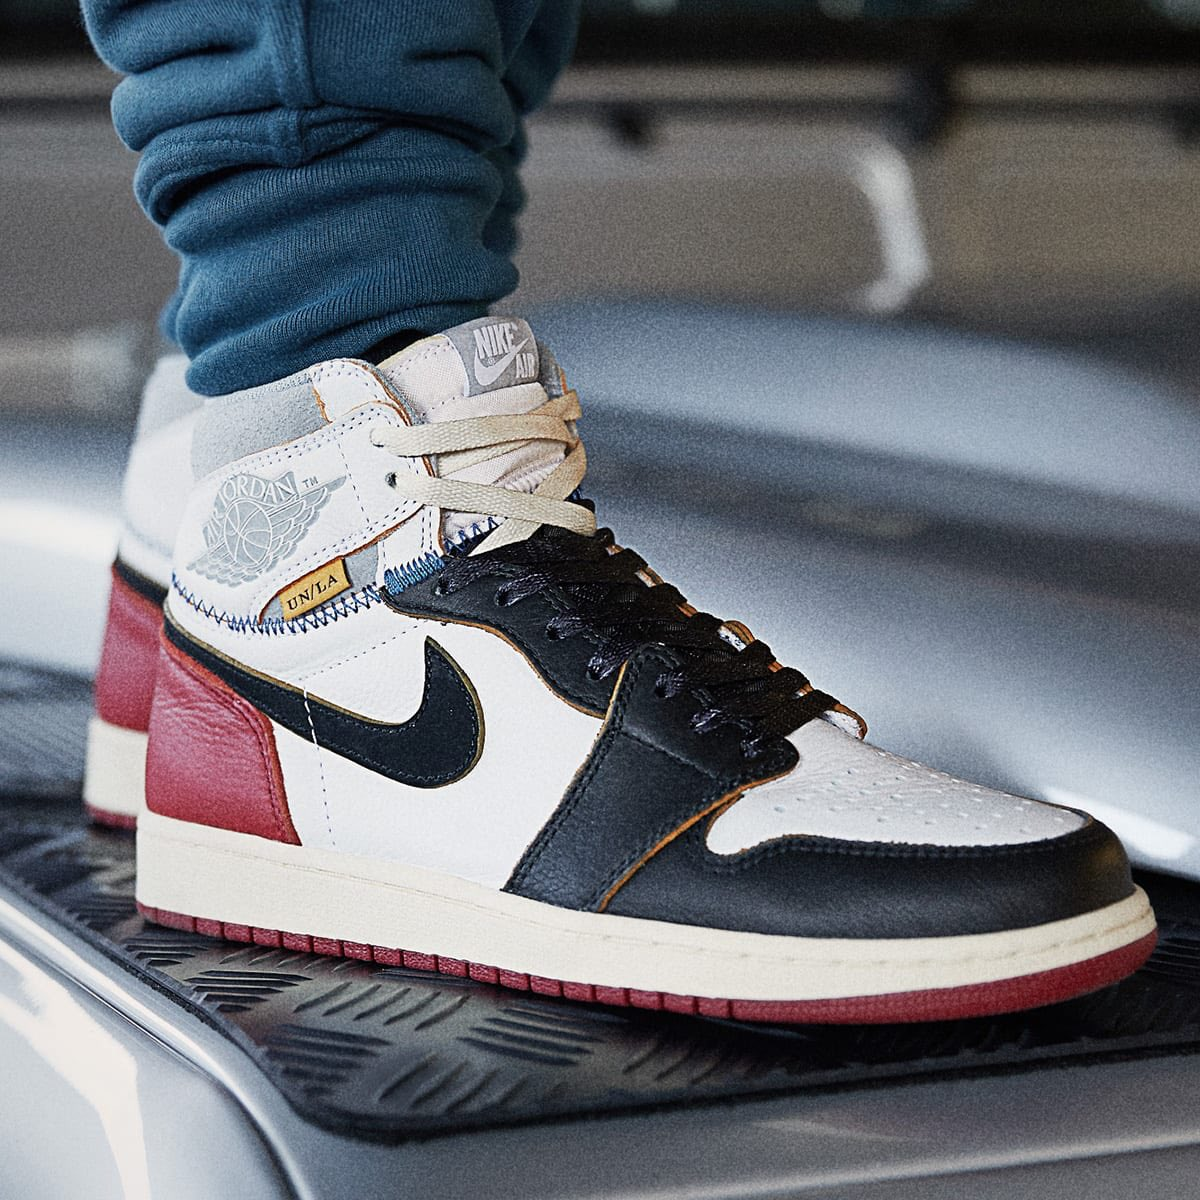 9228961b30e1 Stay tuned for more info.  http   kicksdeals.ca release-dates 2018 union-la-x-air-jordan-1-high-blackred   …pic.twitter.com 4aYQiEQzRf